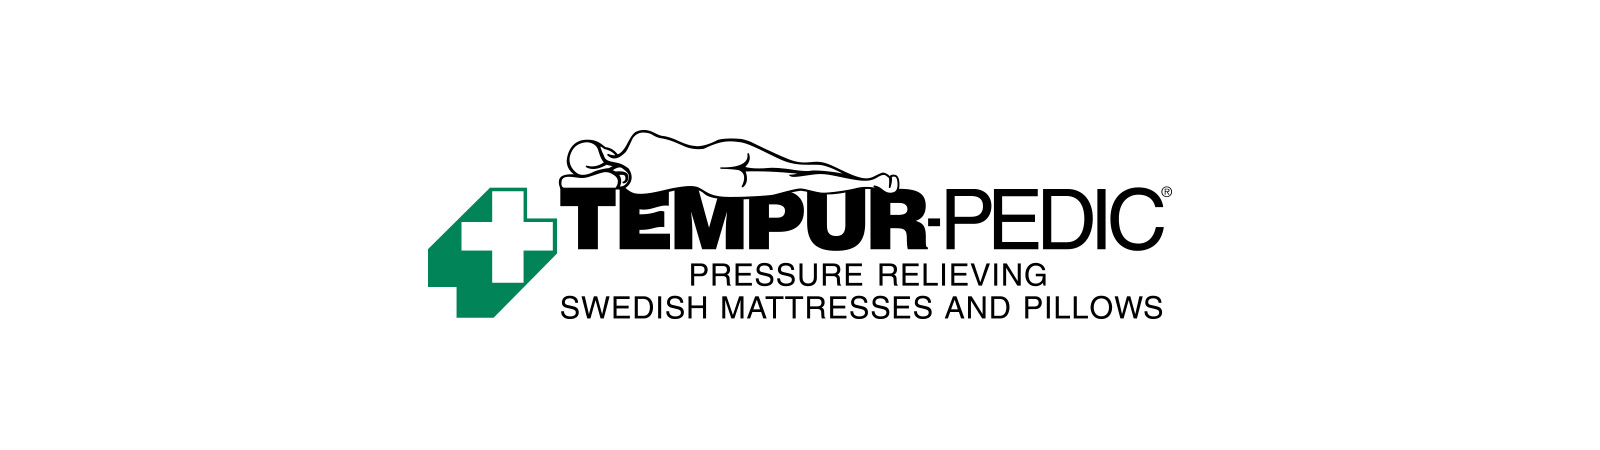 Tempur-Pedic International logo image